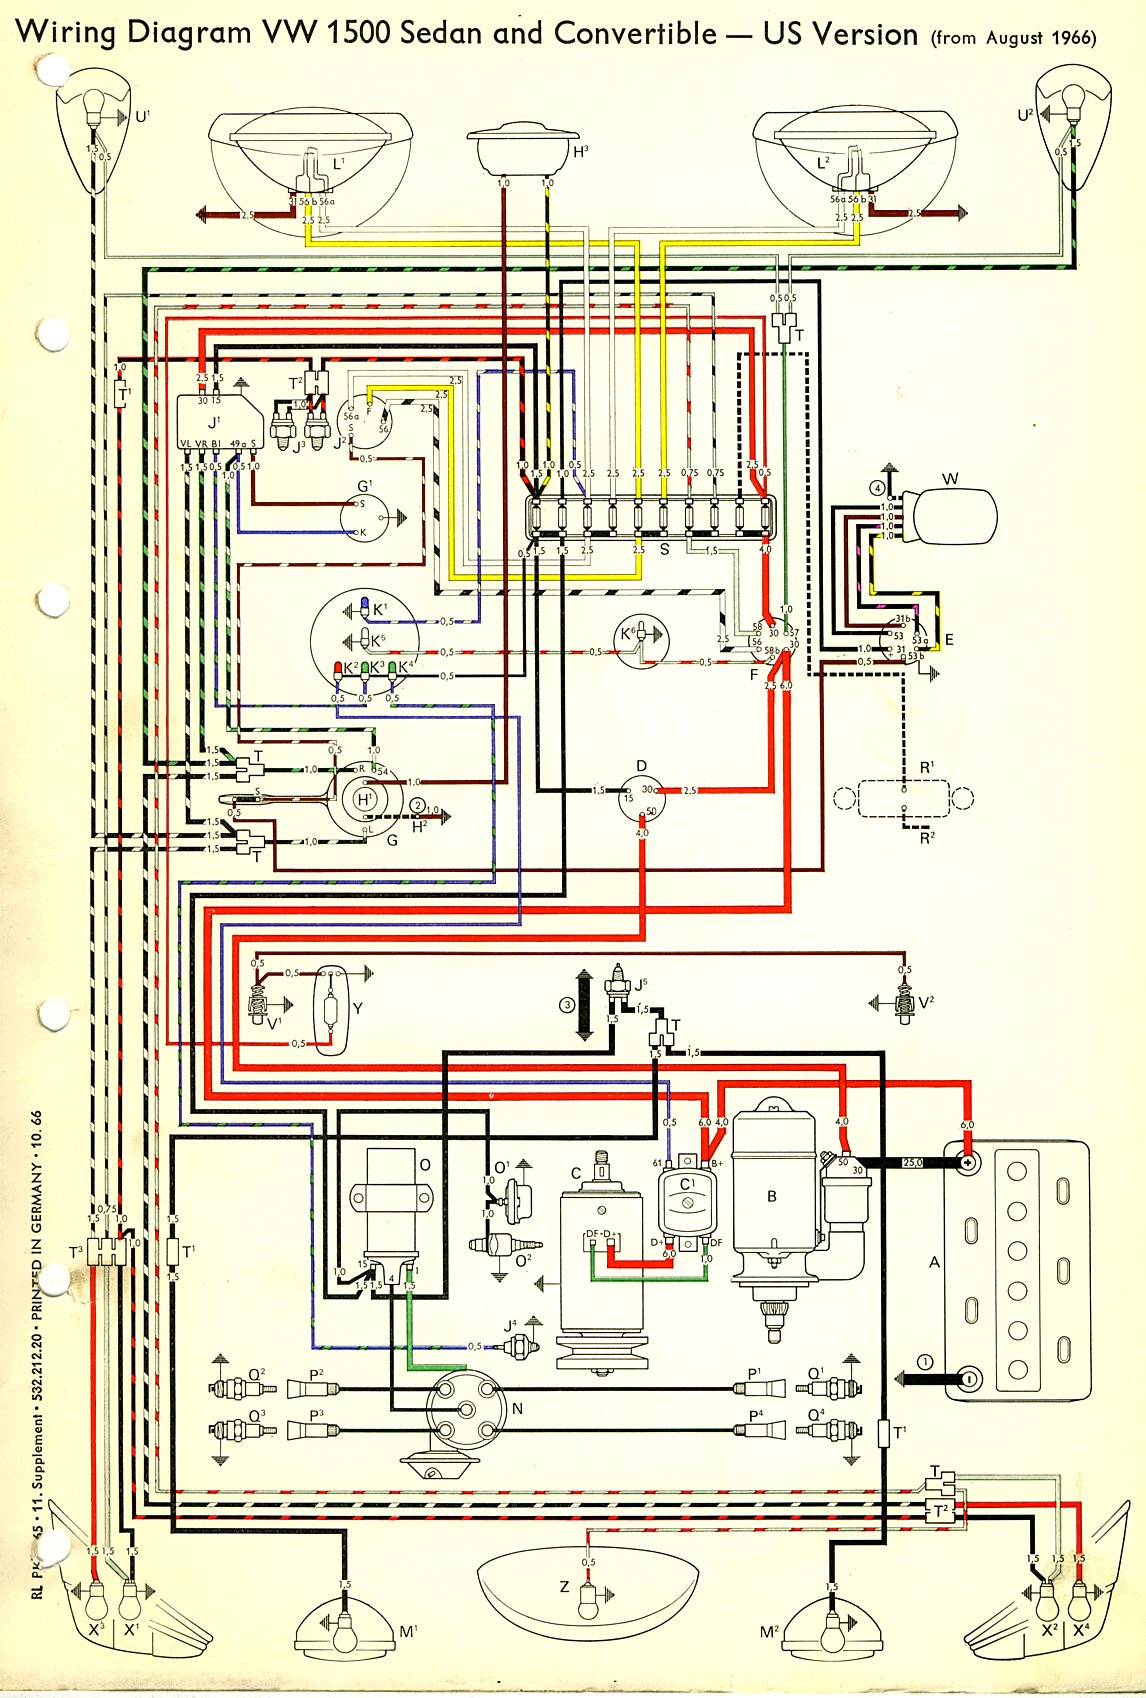 bug_67_USA 1967 beetle wiring diagram (usa) thegoldenbug com 1957 vw beetle wiring diagram at bayanpartner.co